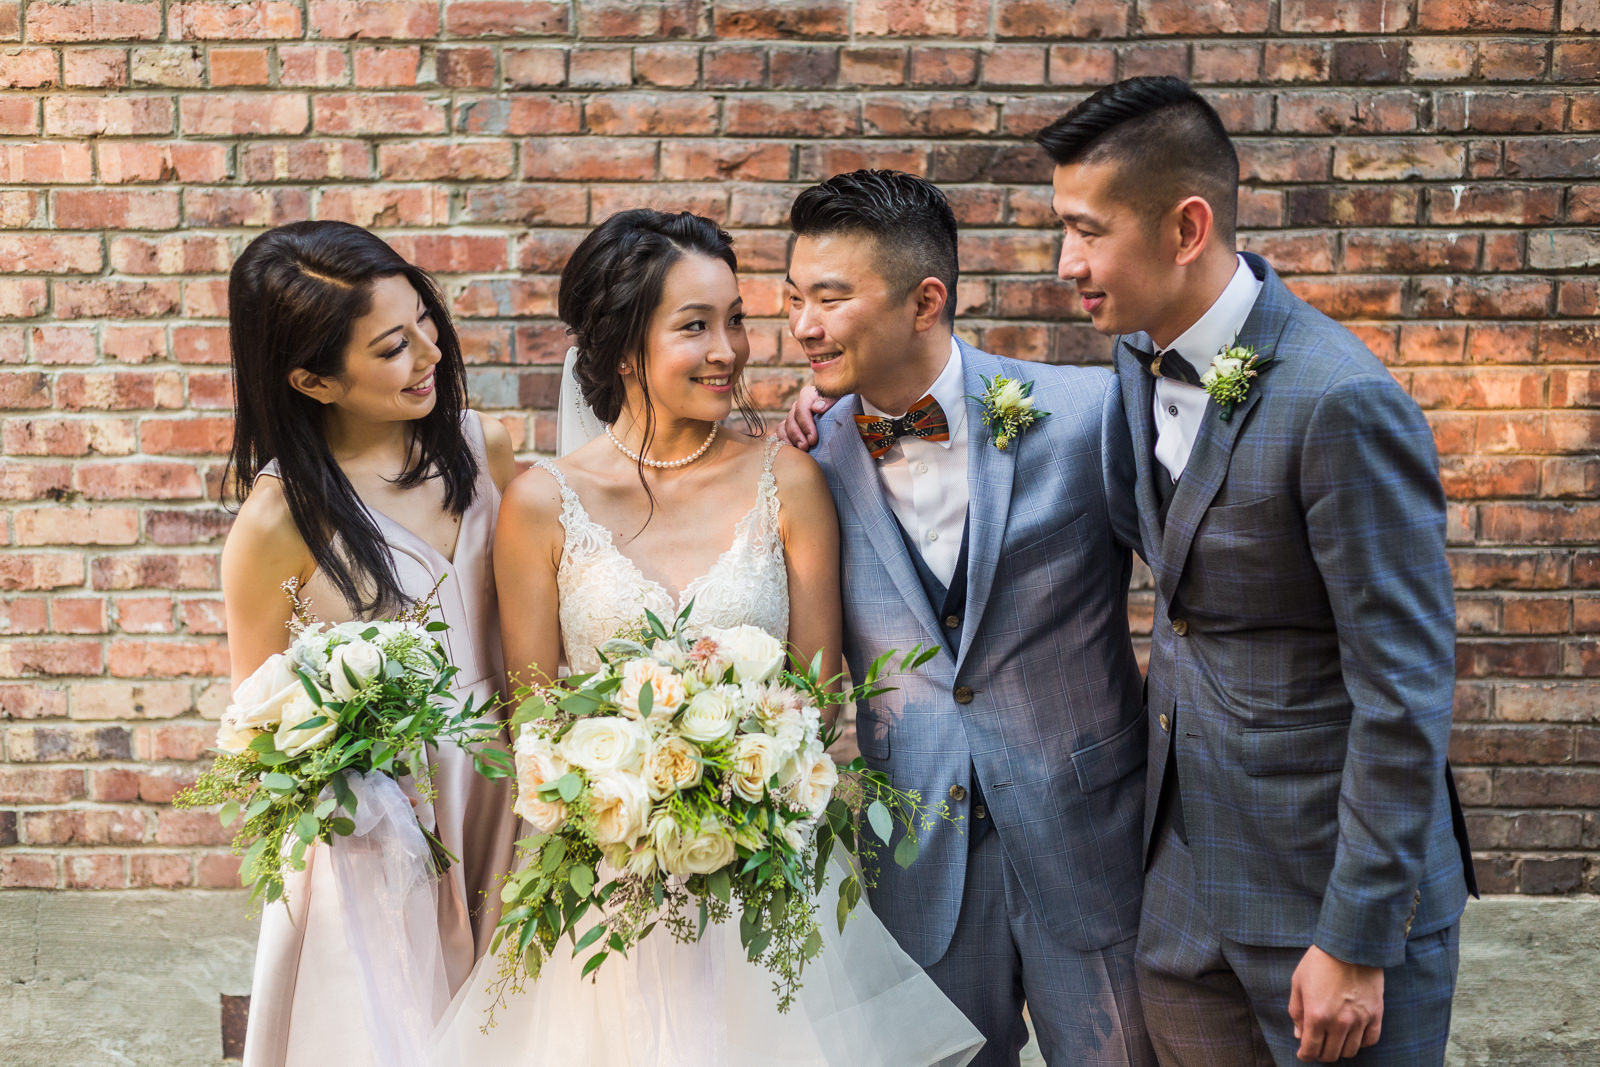 A BRIX & MORTAR WEDDING – YUUMI & KEITH